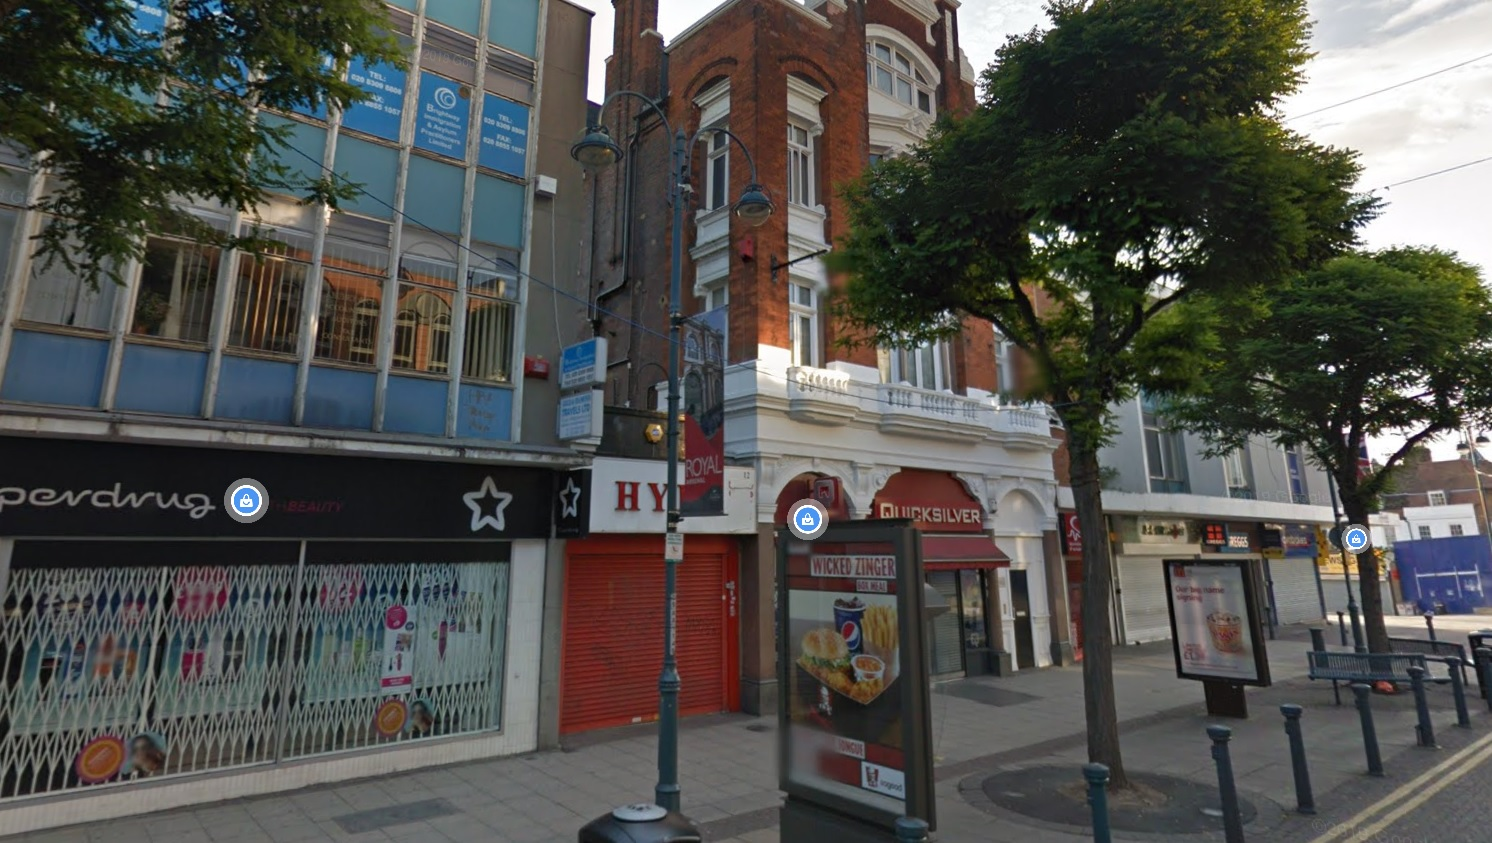 Woolwich shop demolition proposed at Powis Street